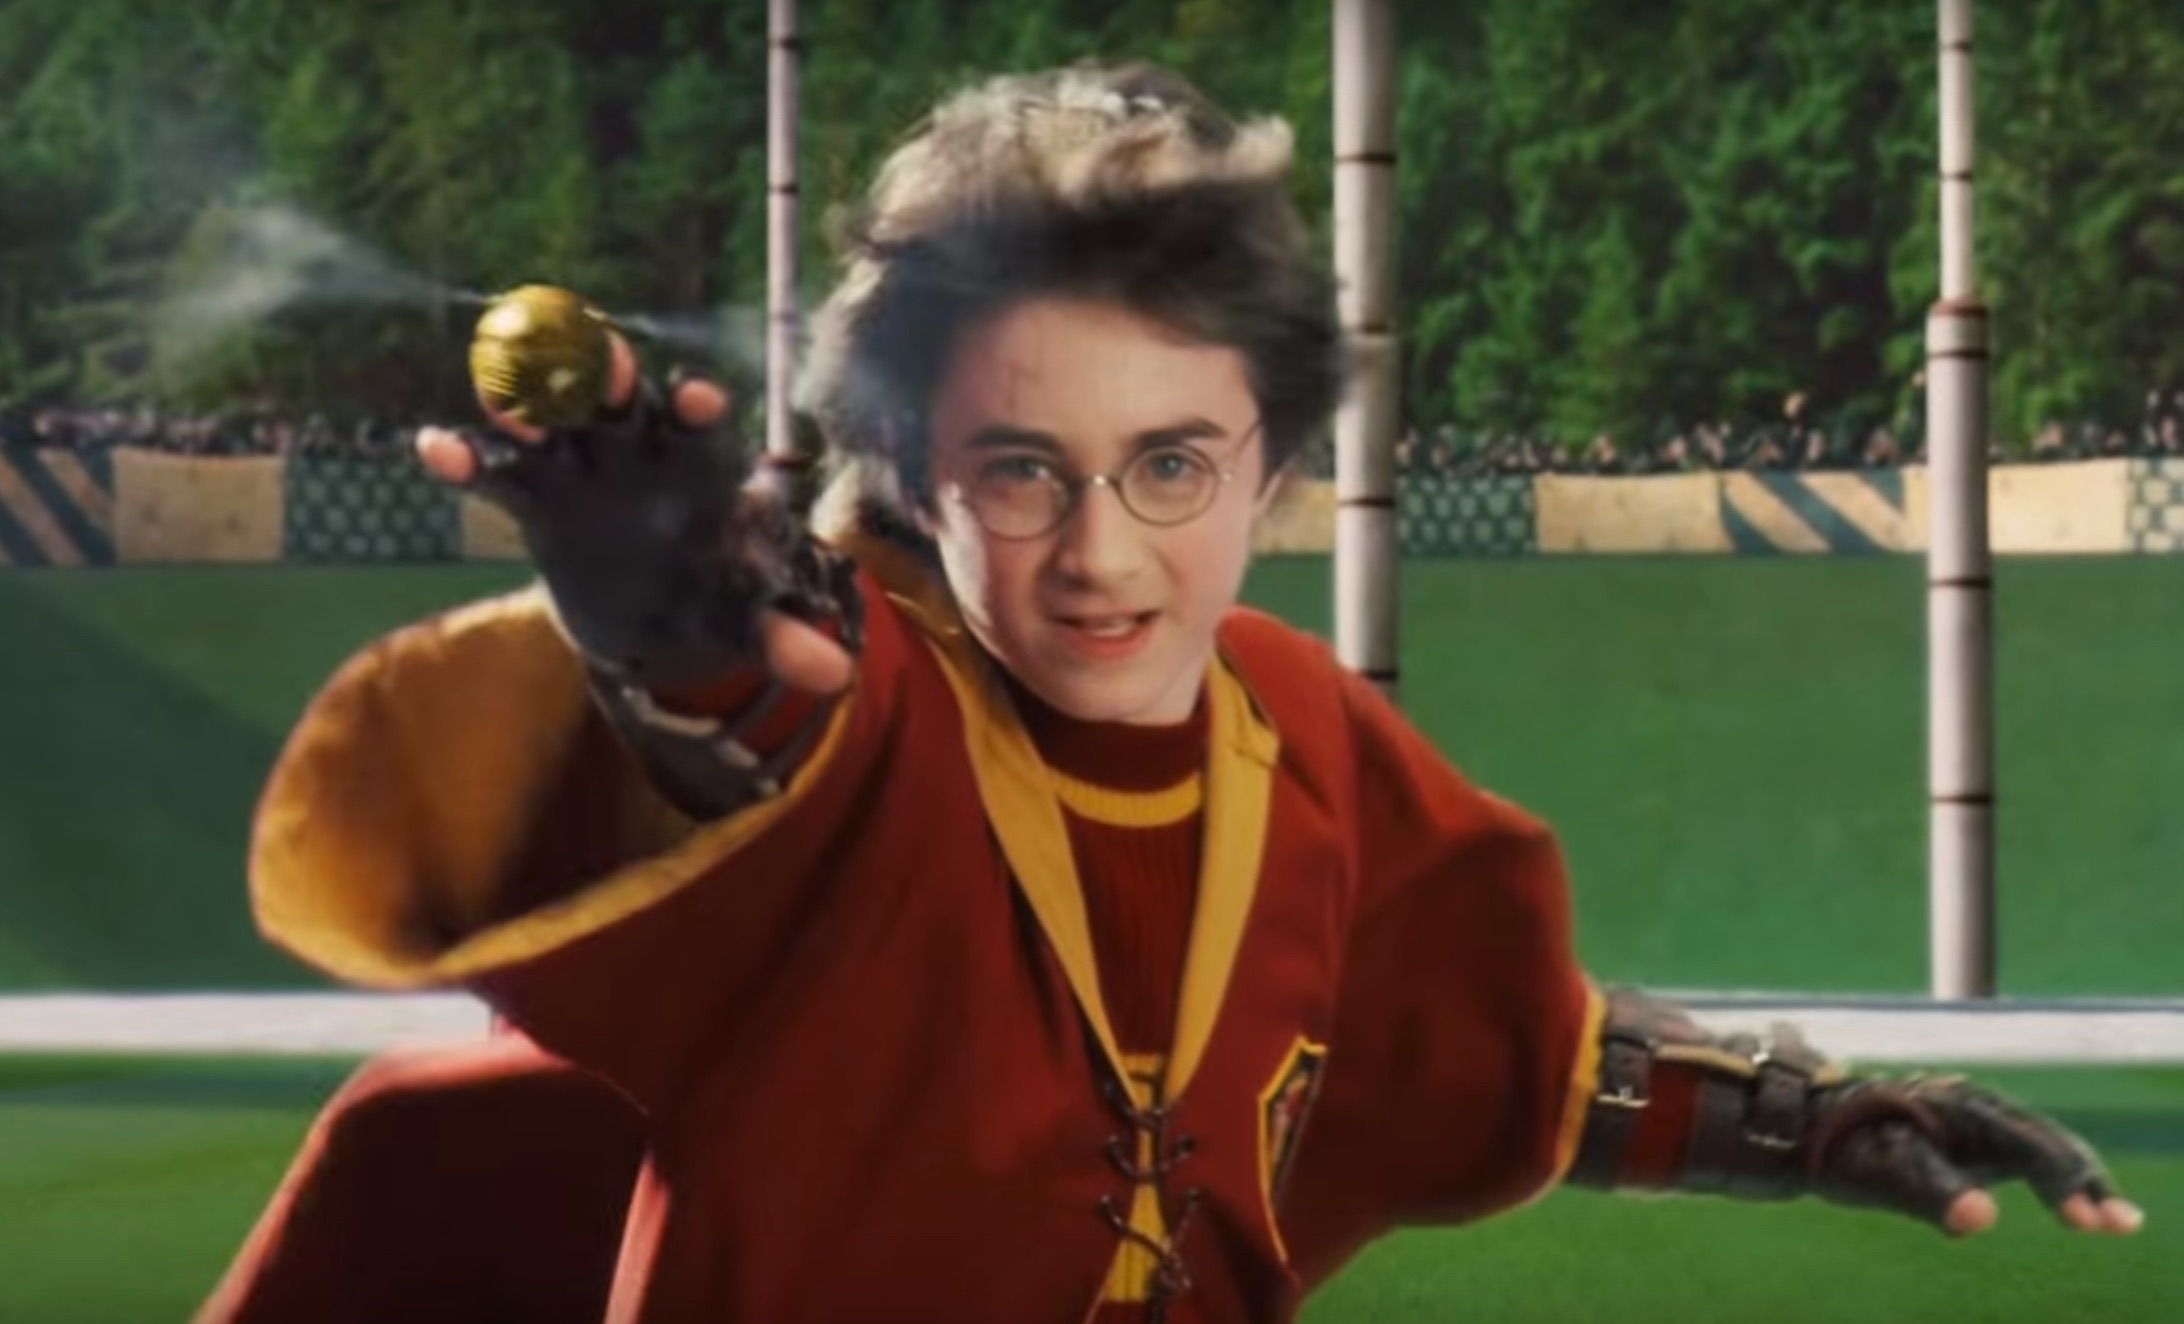 Quidditch Pong is a thing and we're obsessed